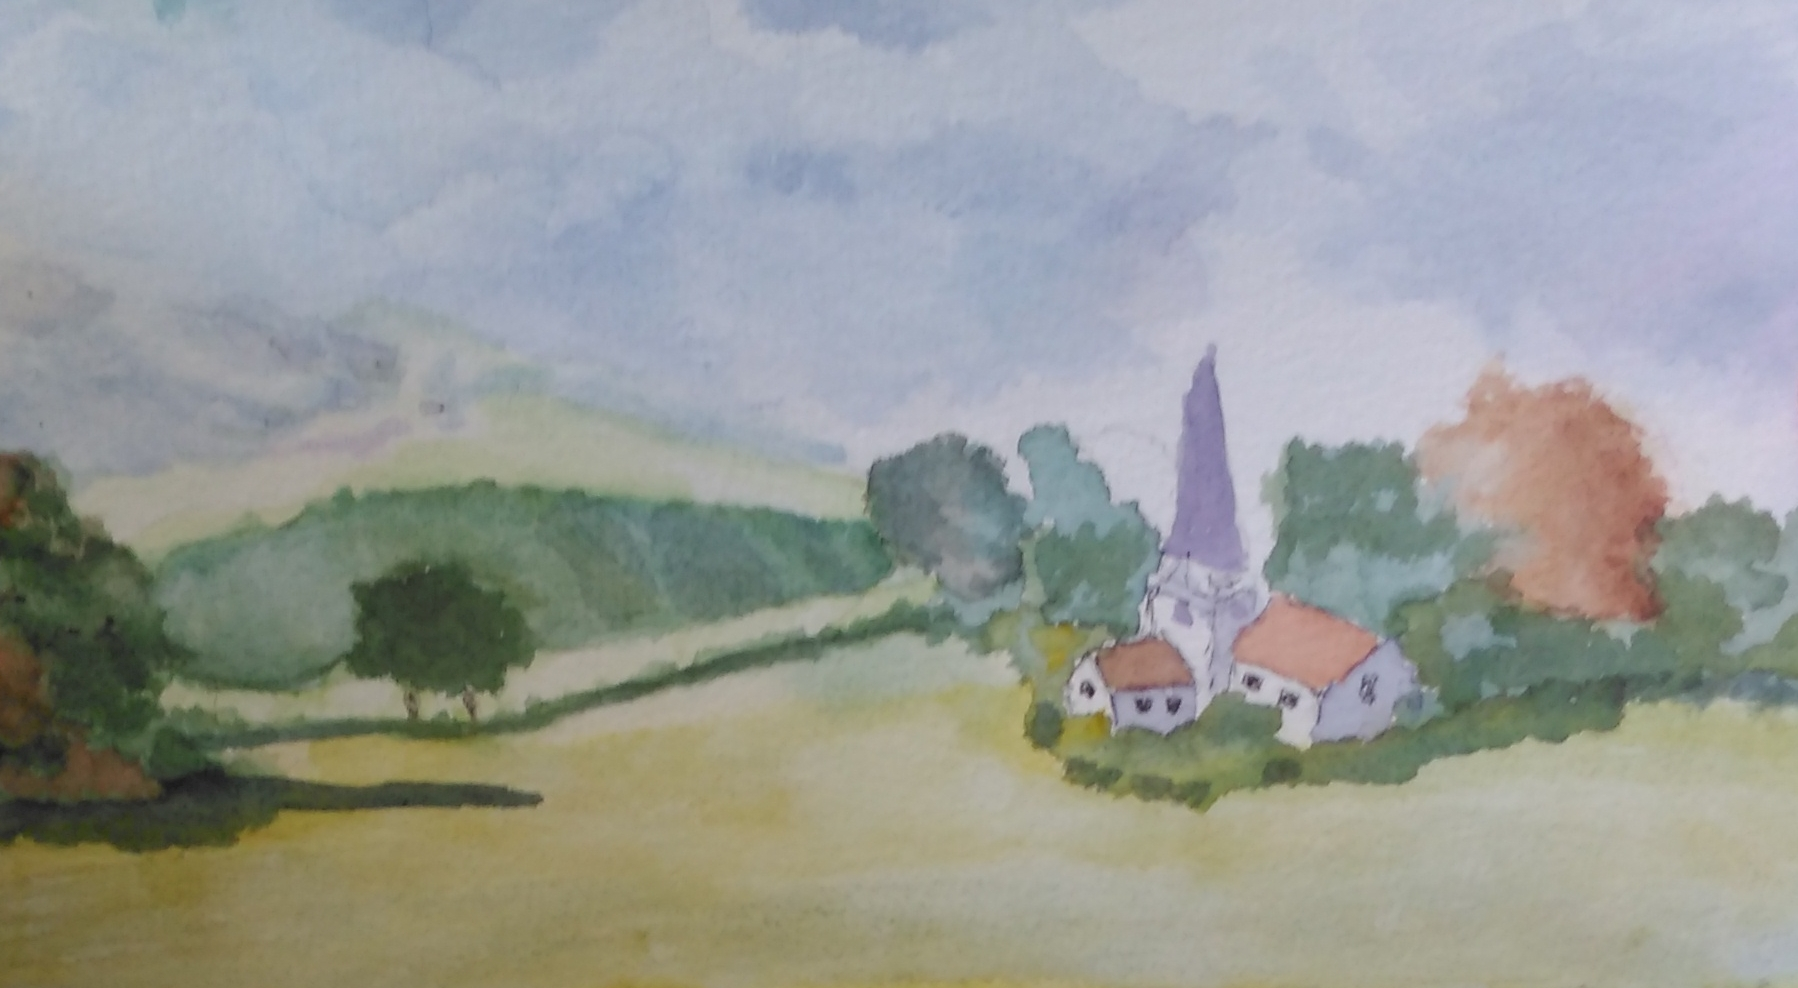 A watercolour of a peaceful church in a field with a mountain backdrop.